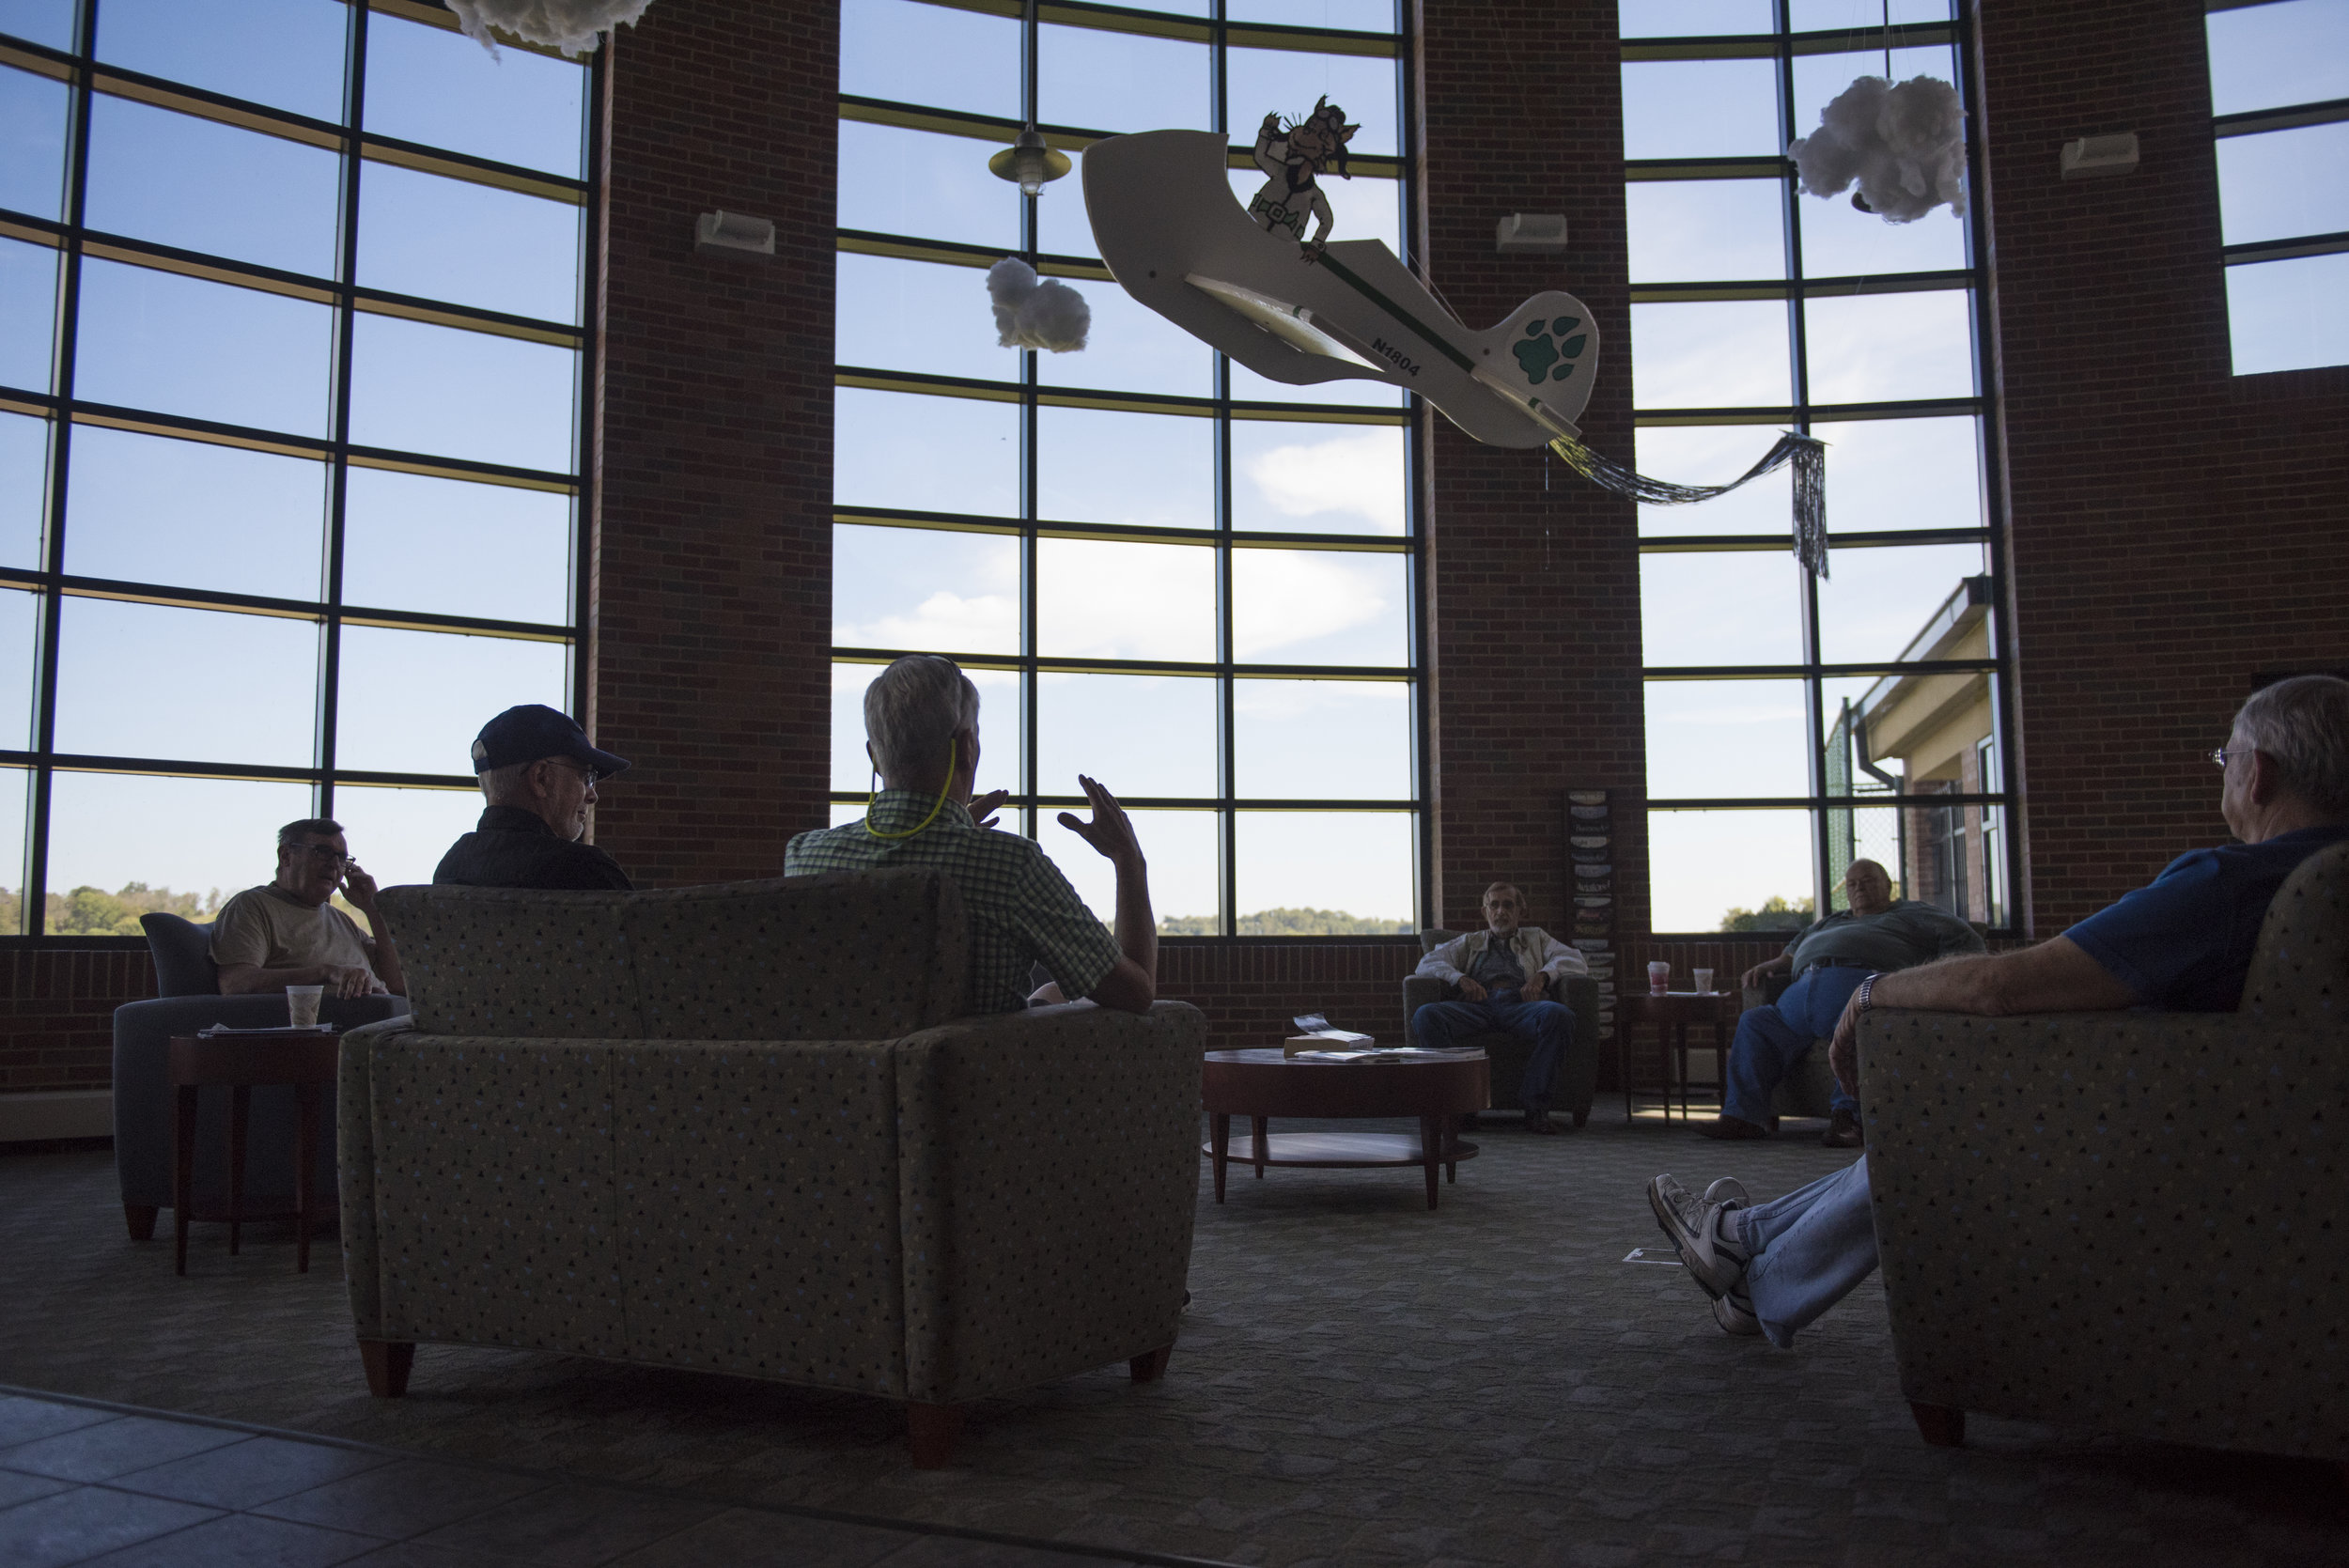 (From left to right) Rich Beckmell, Charlie Dorsey, Bryan Branham, Dave Weks, Phil Laughlin and Virgil Reeves sit in the terminal at Gordon K. Bush on Sept. 24, 2017. Every weekend they hang out, discuss flying and reminisce about the past while enjoying coffee and donuts.